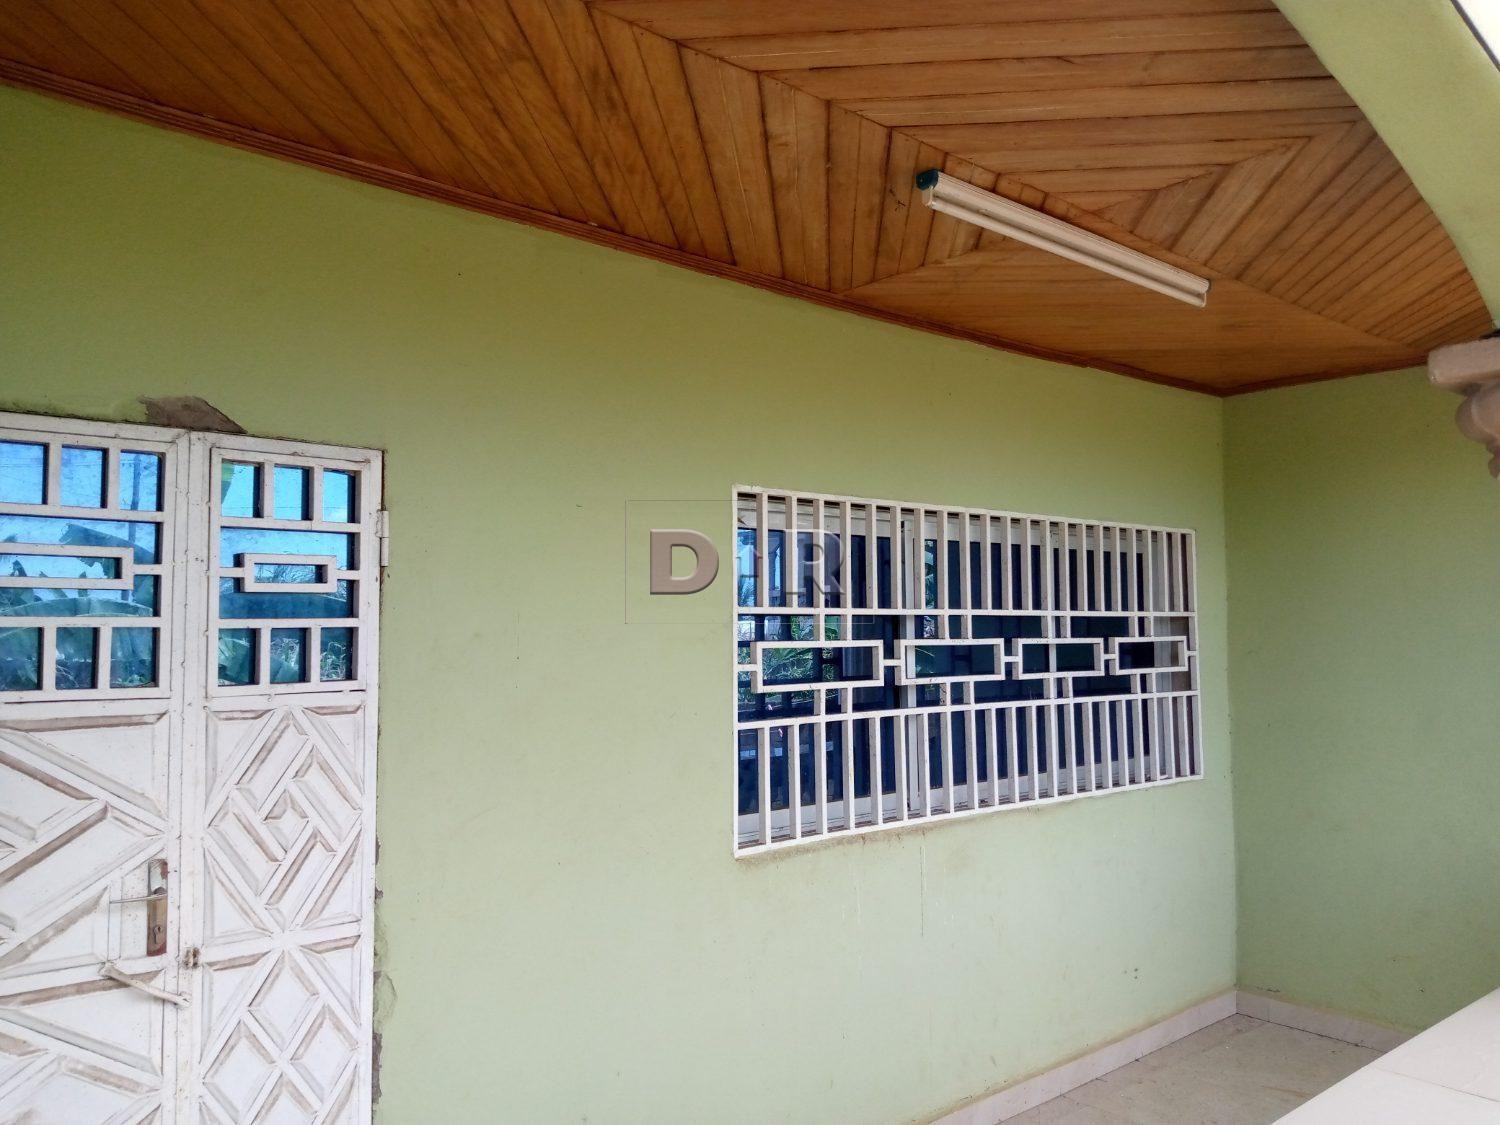 3 bedrooms apartment in fenced compound for residential/office